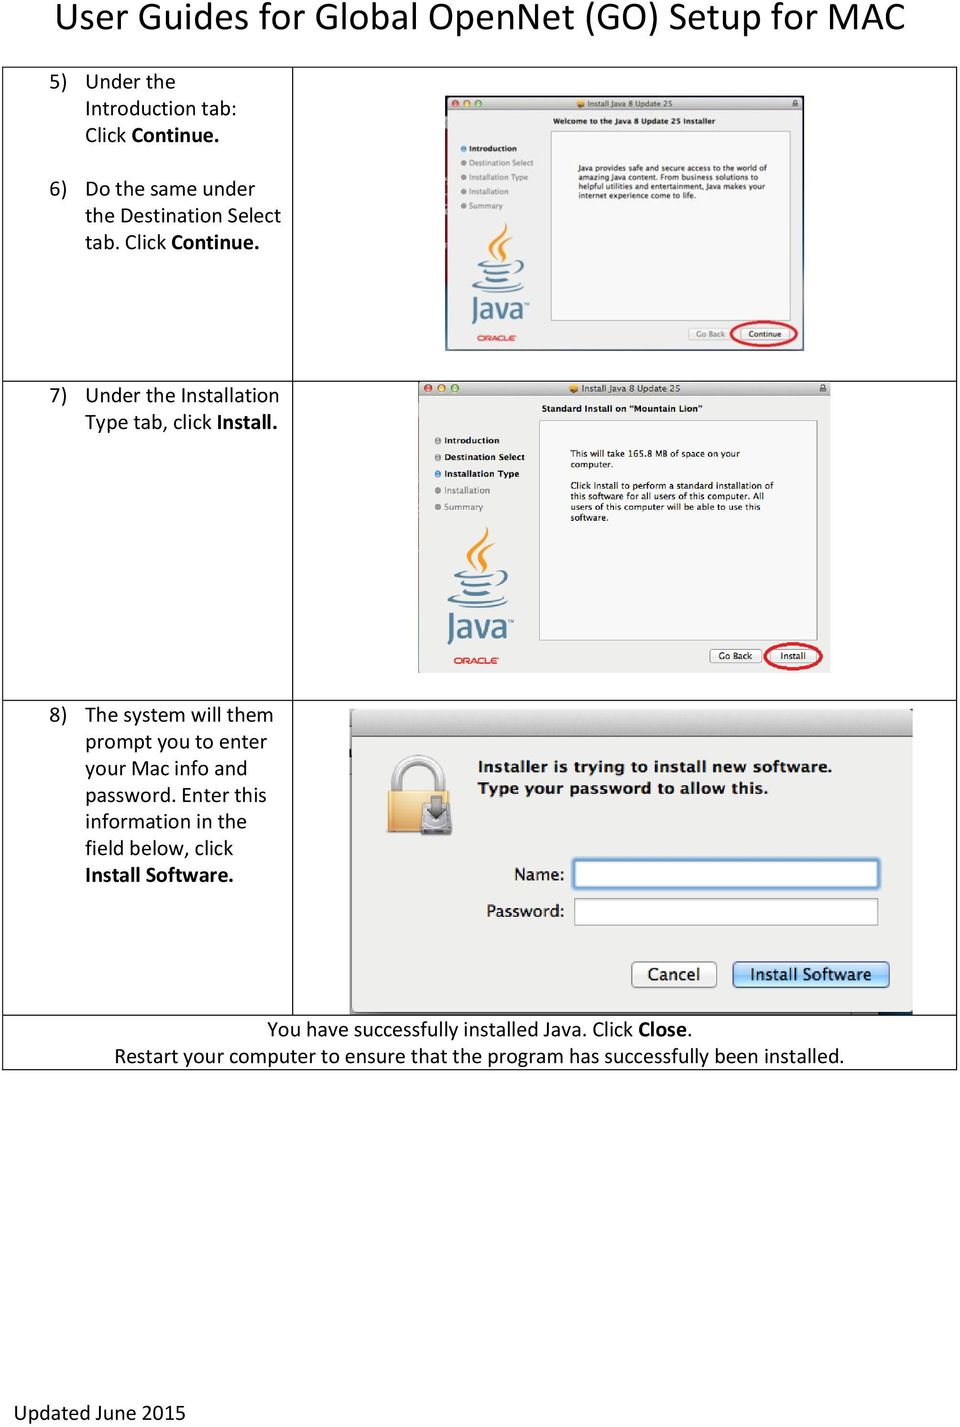 8) The system will them prompt you to enter your Mac info and password.